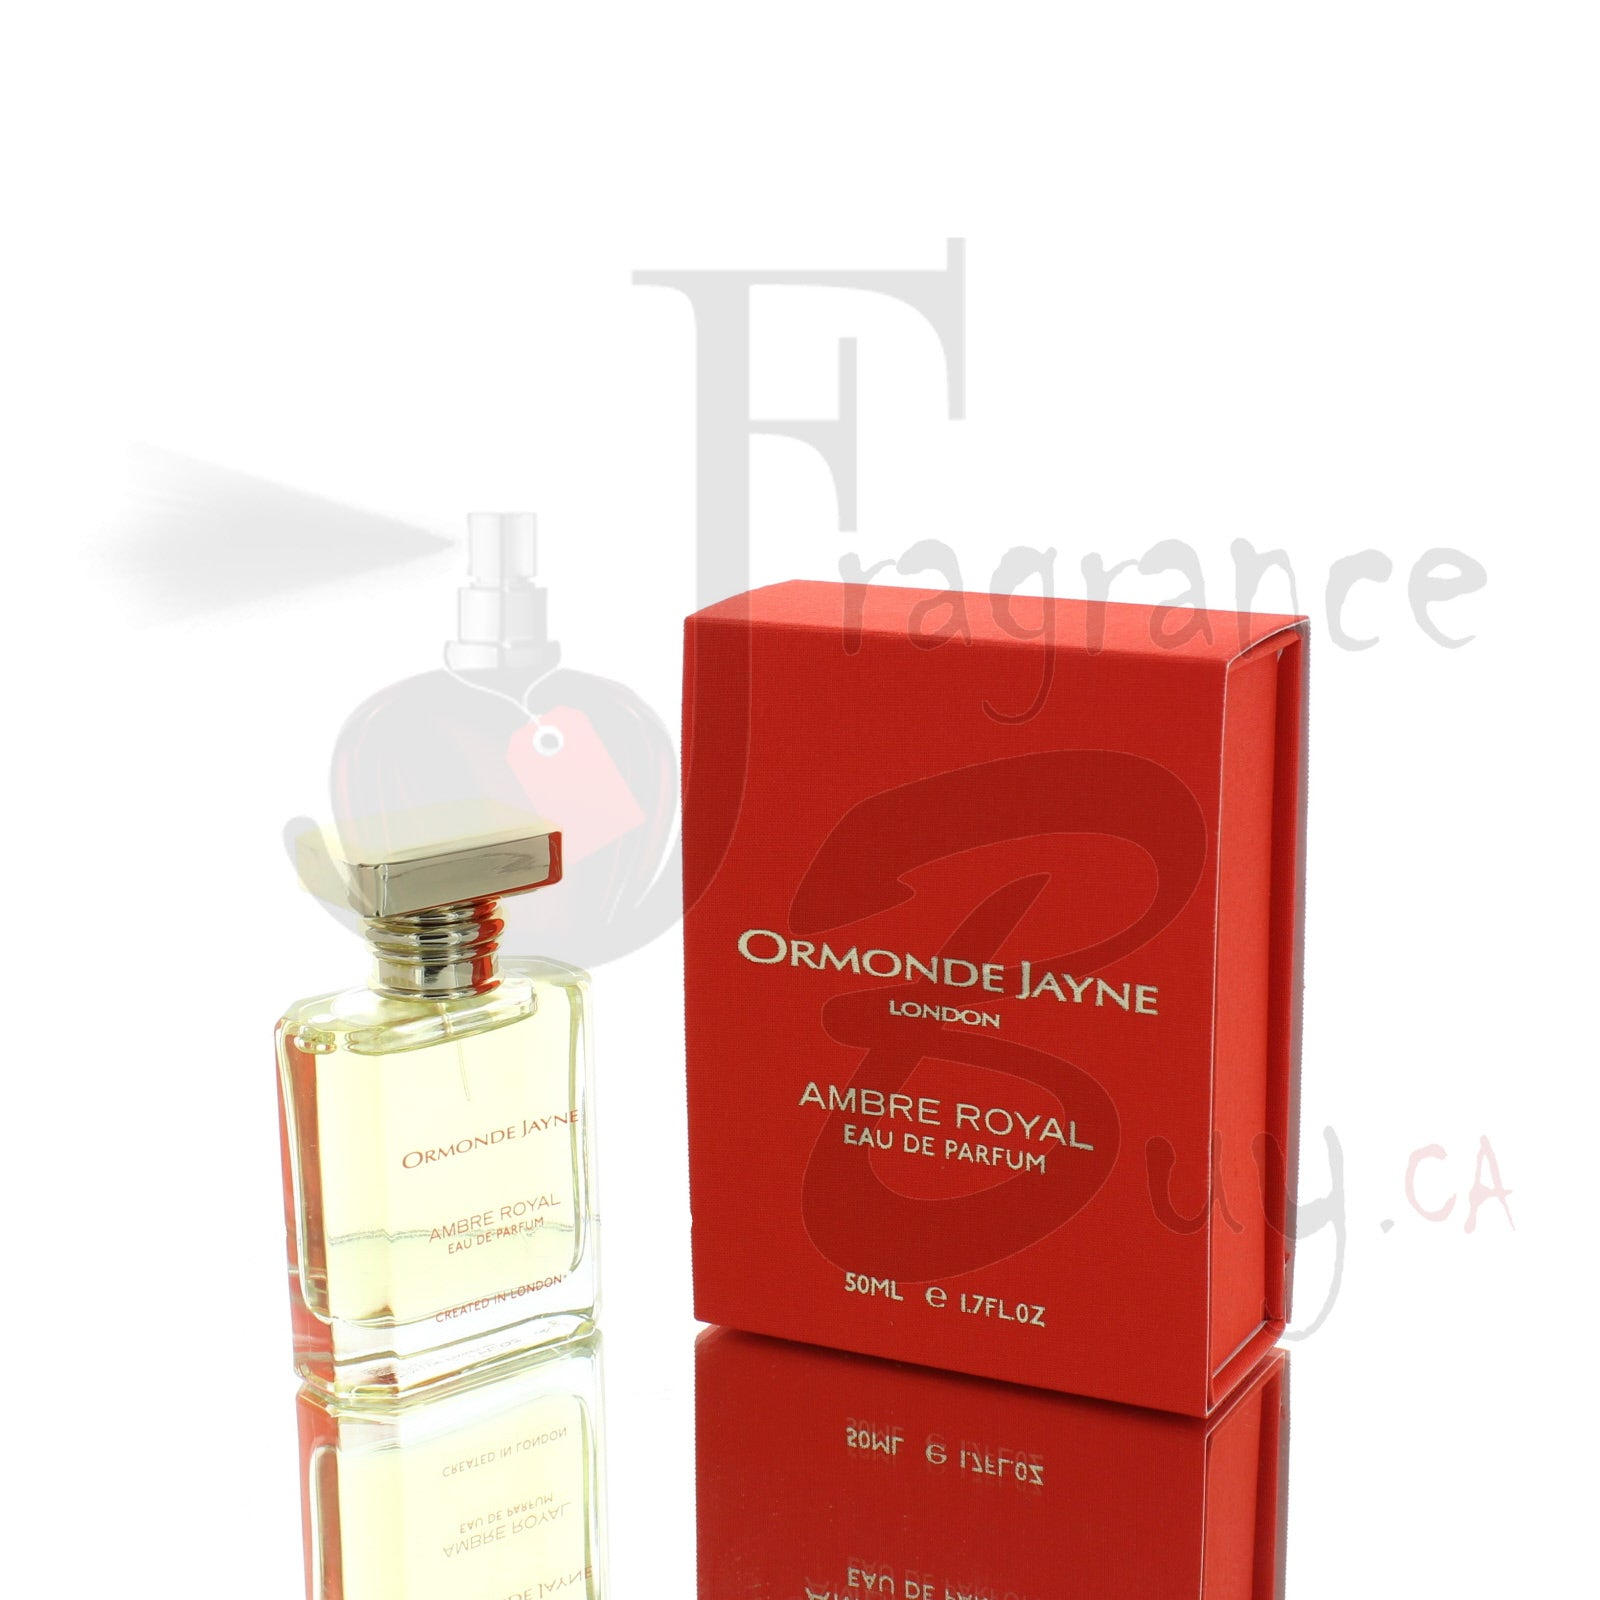 Ormonde Jayne Ambre Royal Man/Woman